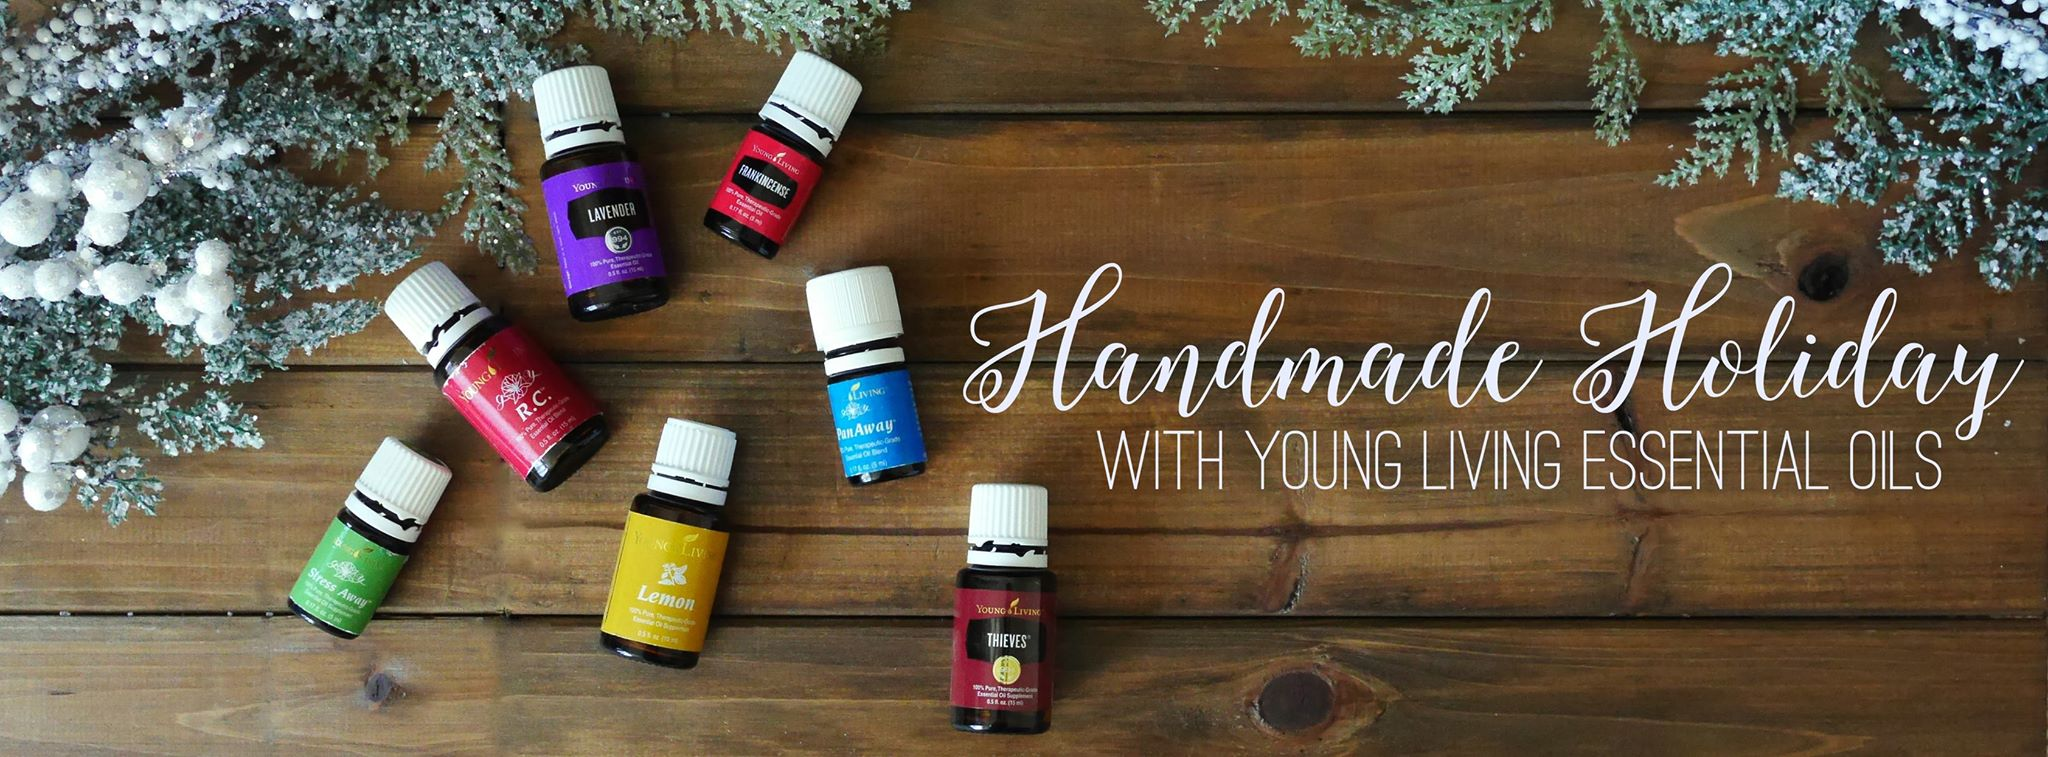 Handmade gifts made using essential oils.